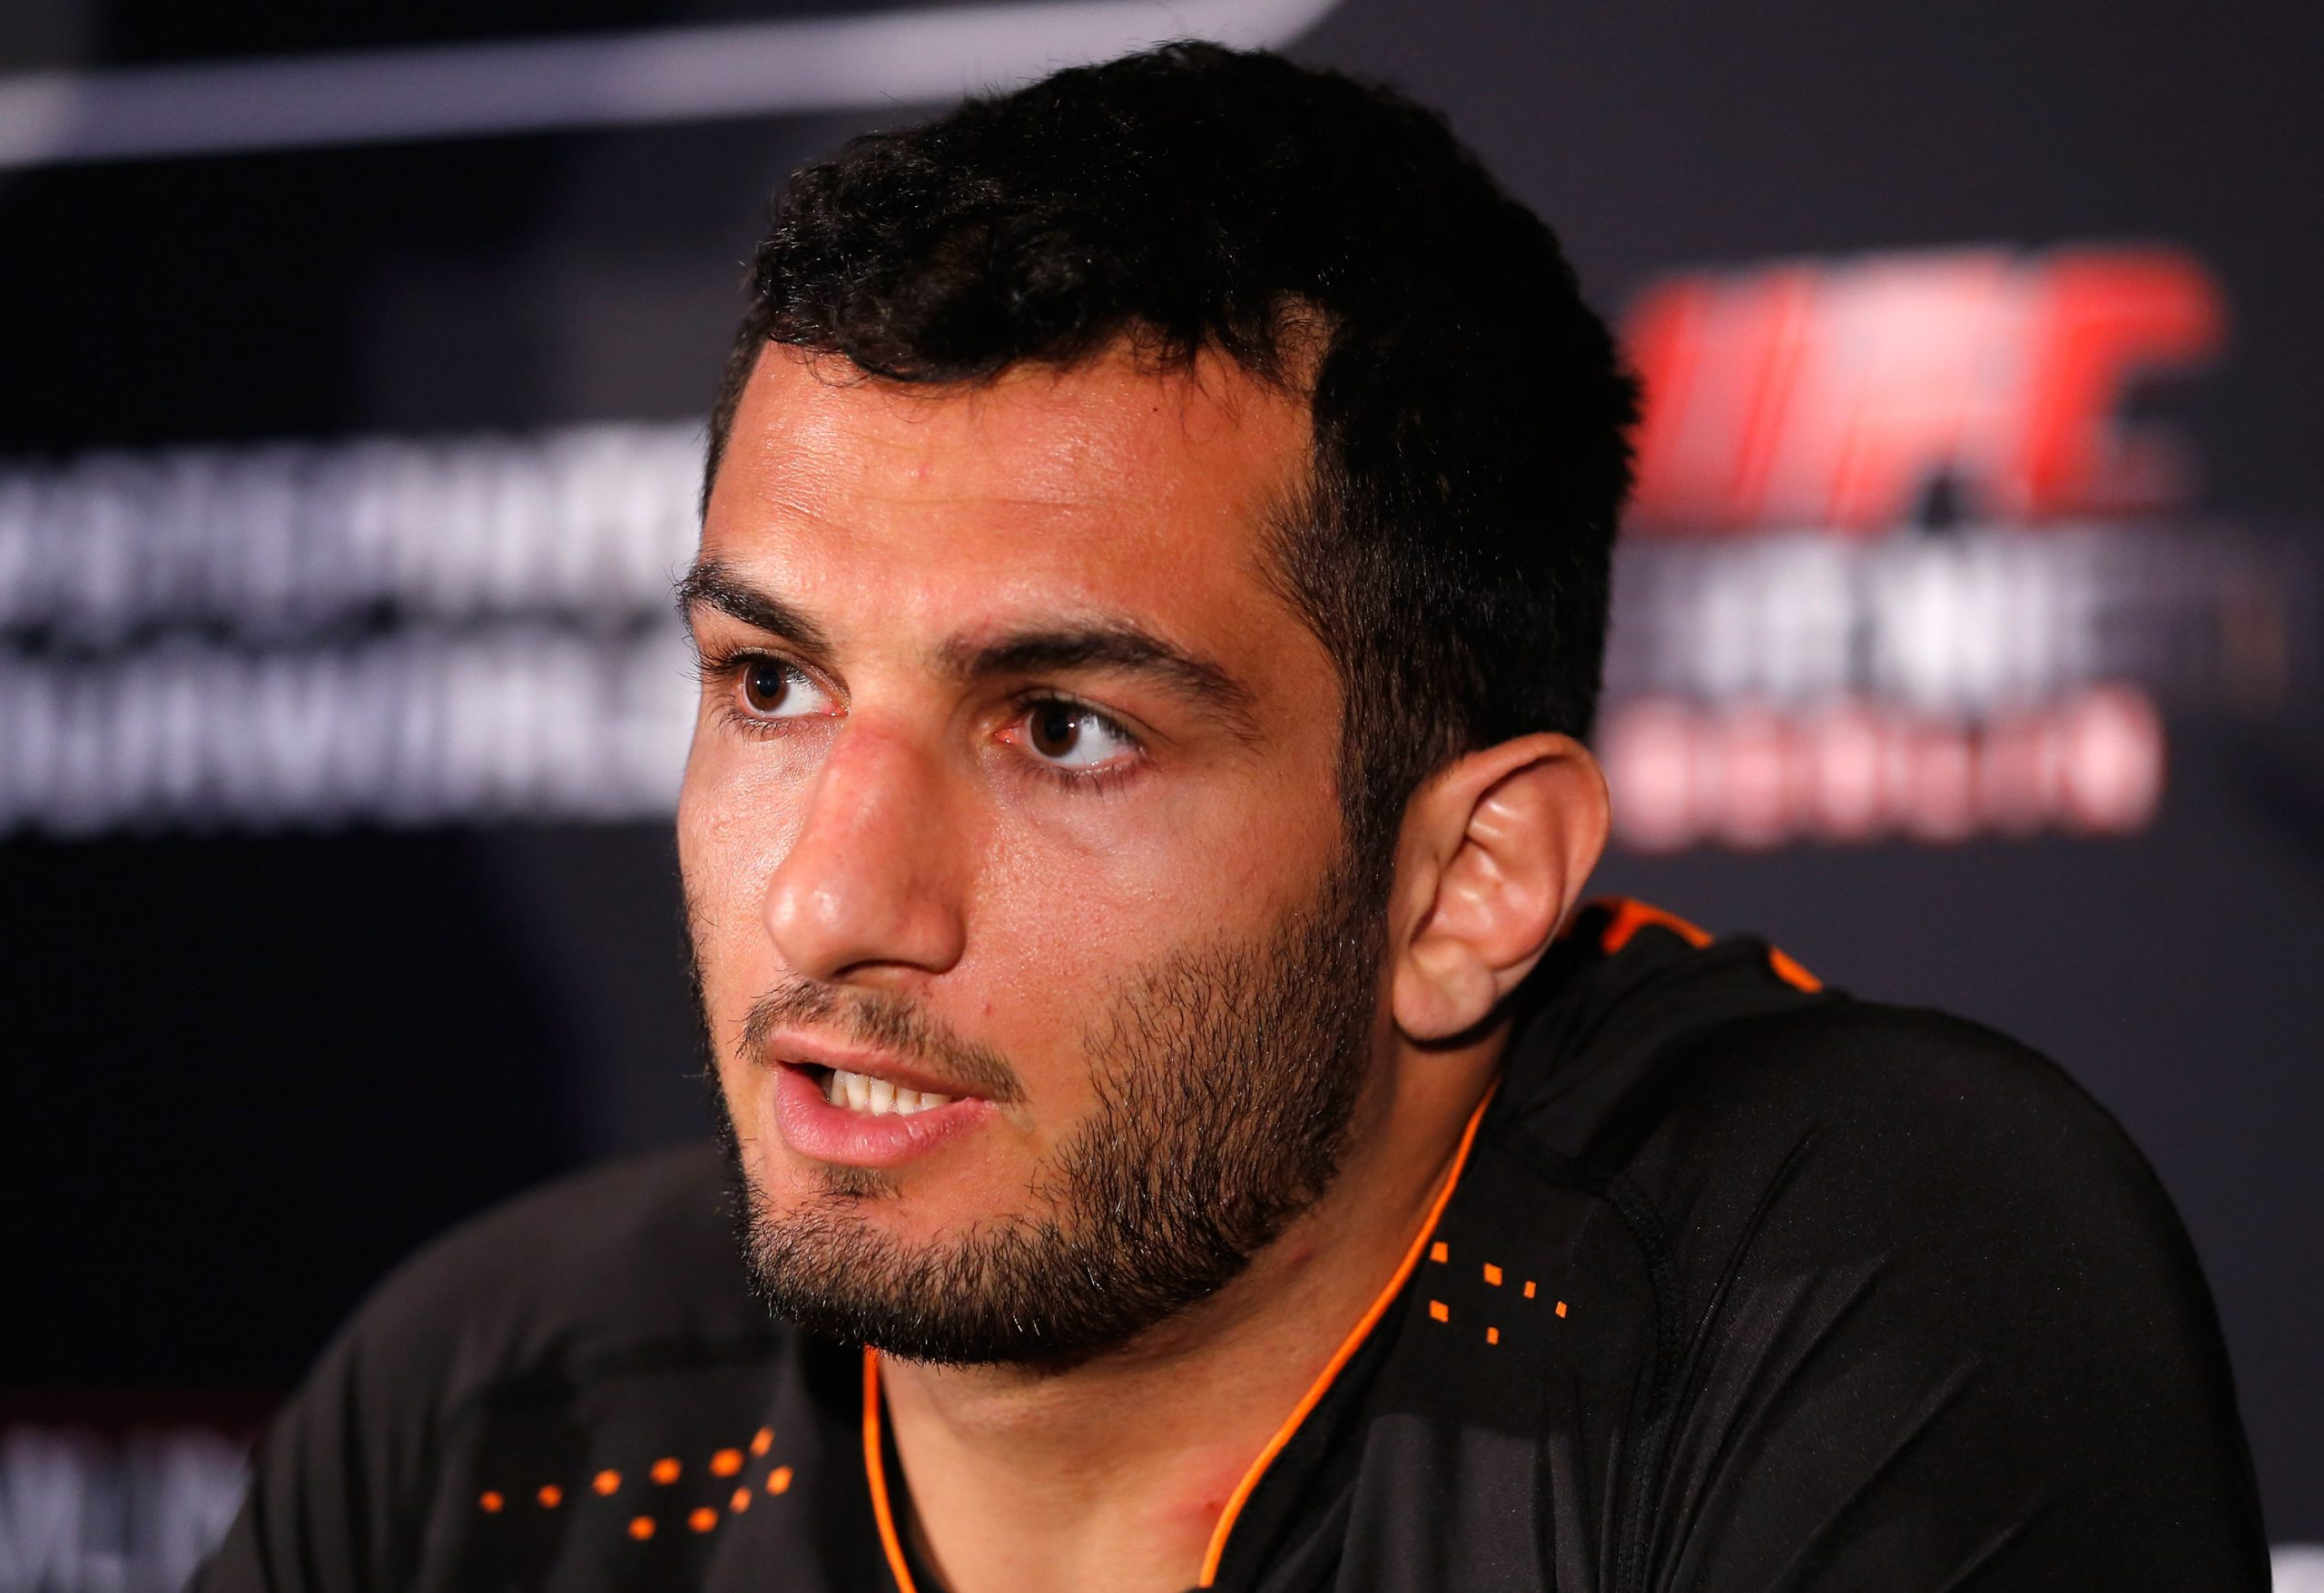 Gegard Mousasi is now in Bellator